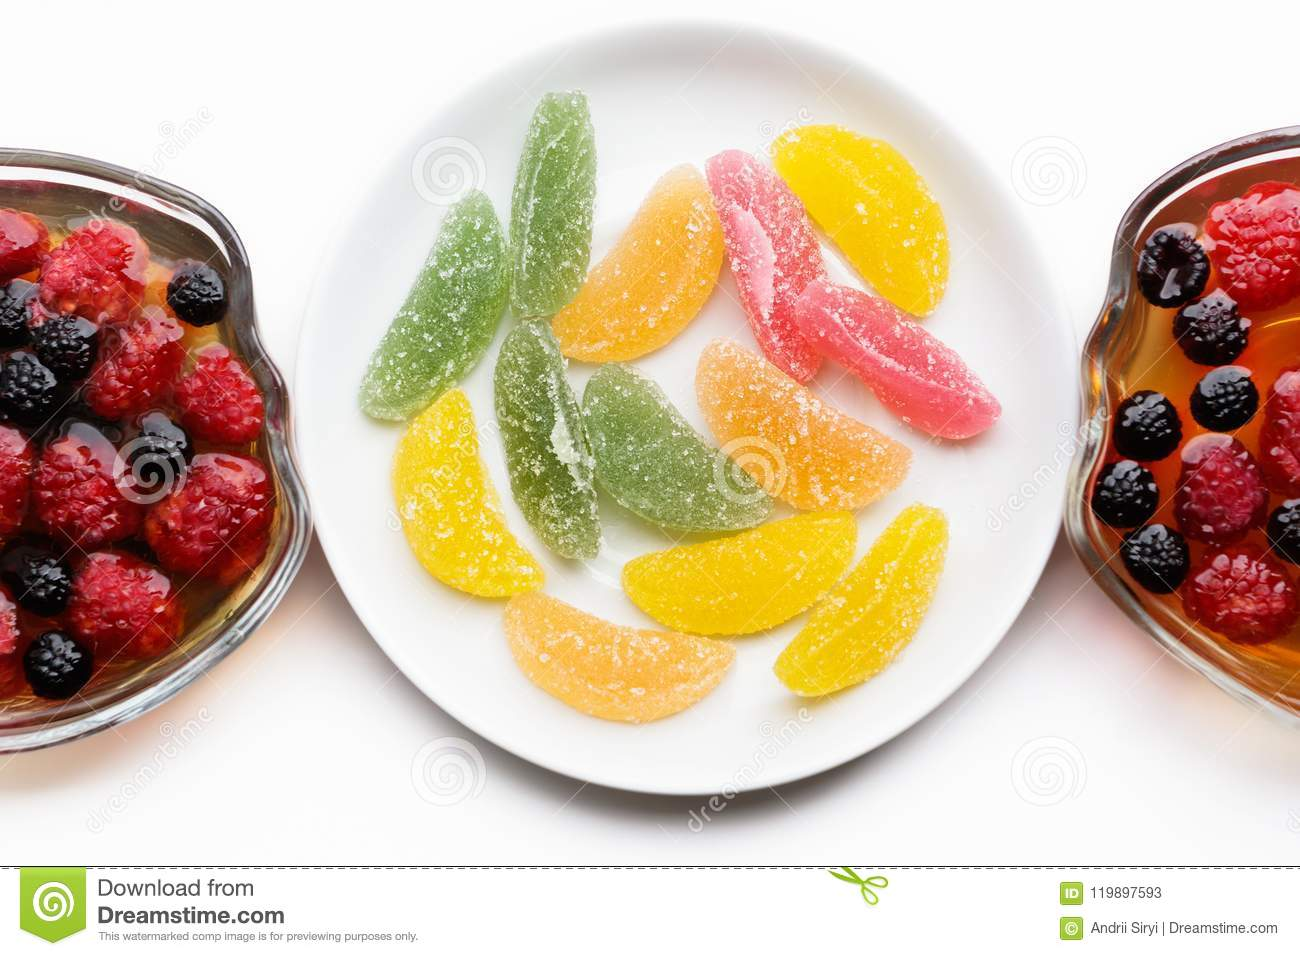 Desserts fruit jelly and marmalade